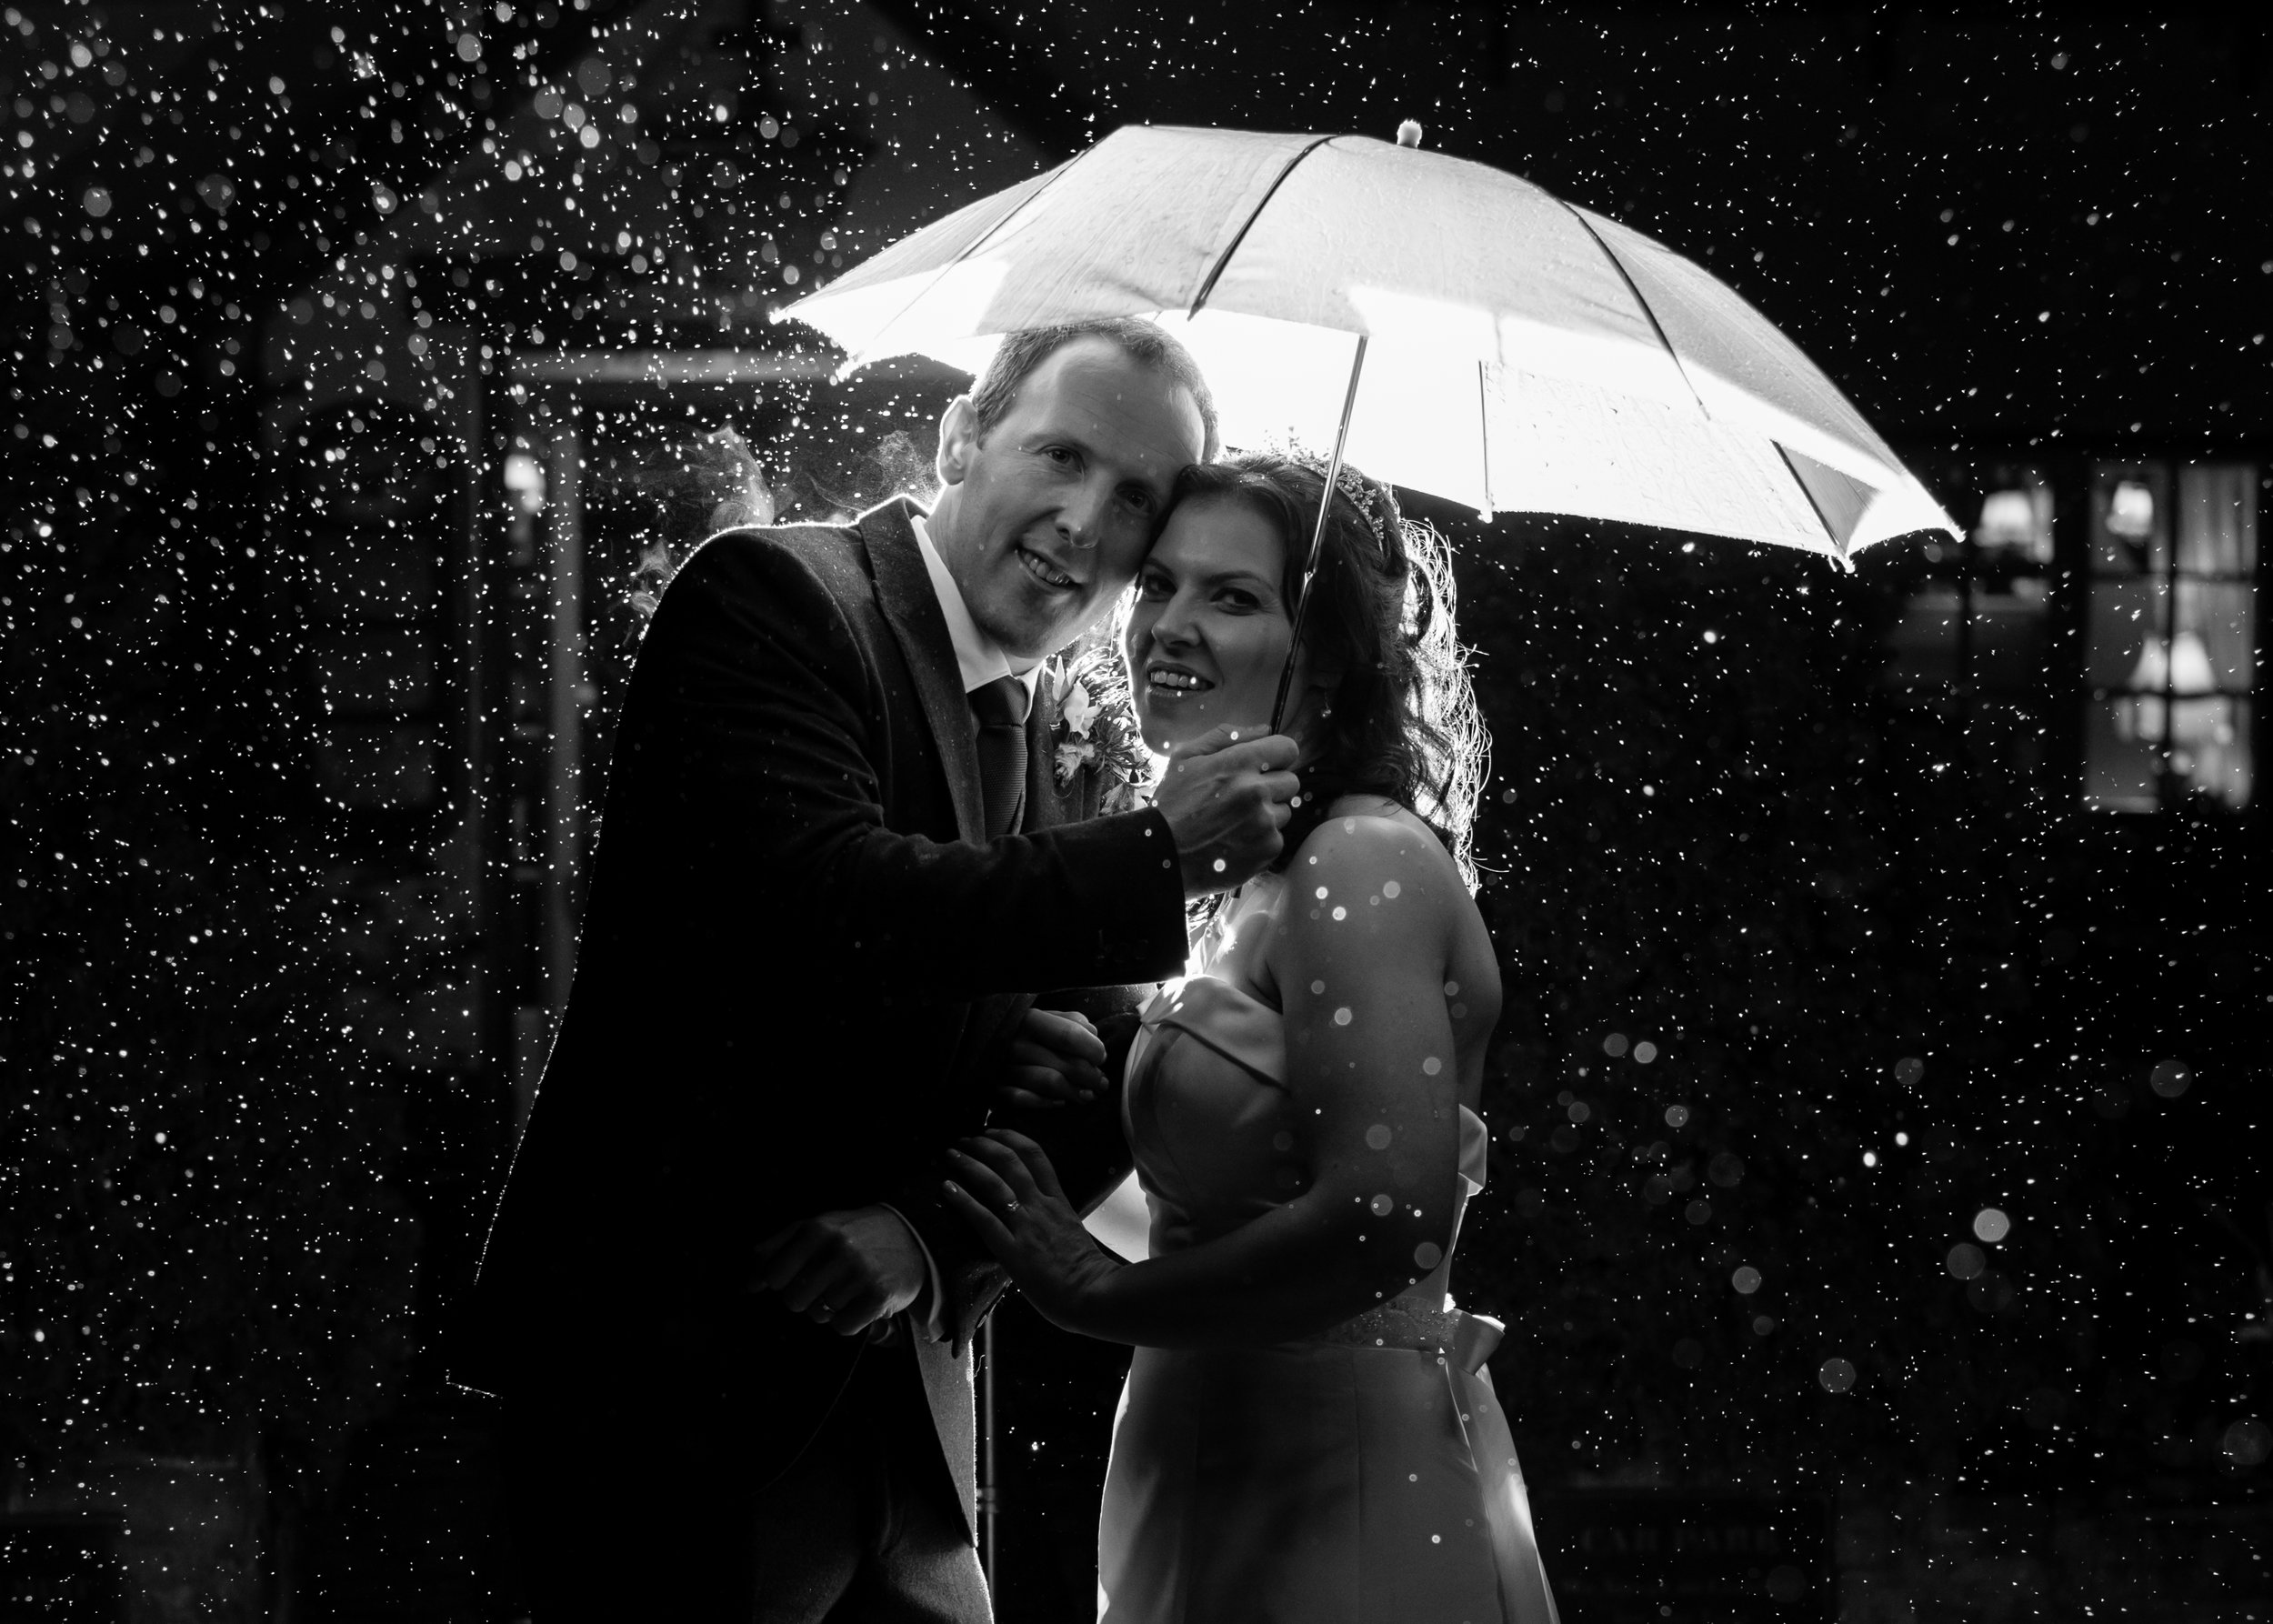 Rain at a wedding - Cheshire wedding photographer